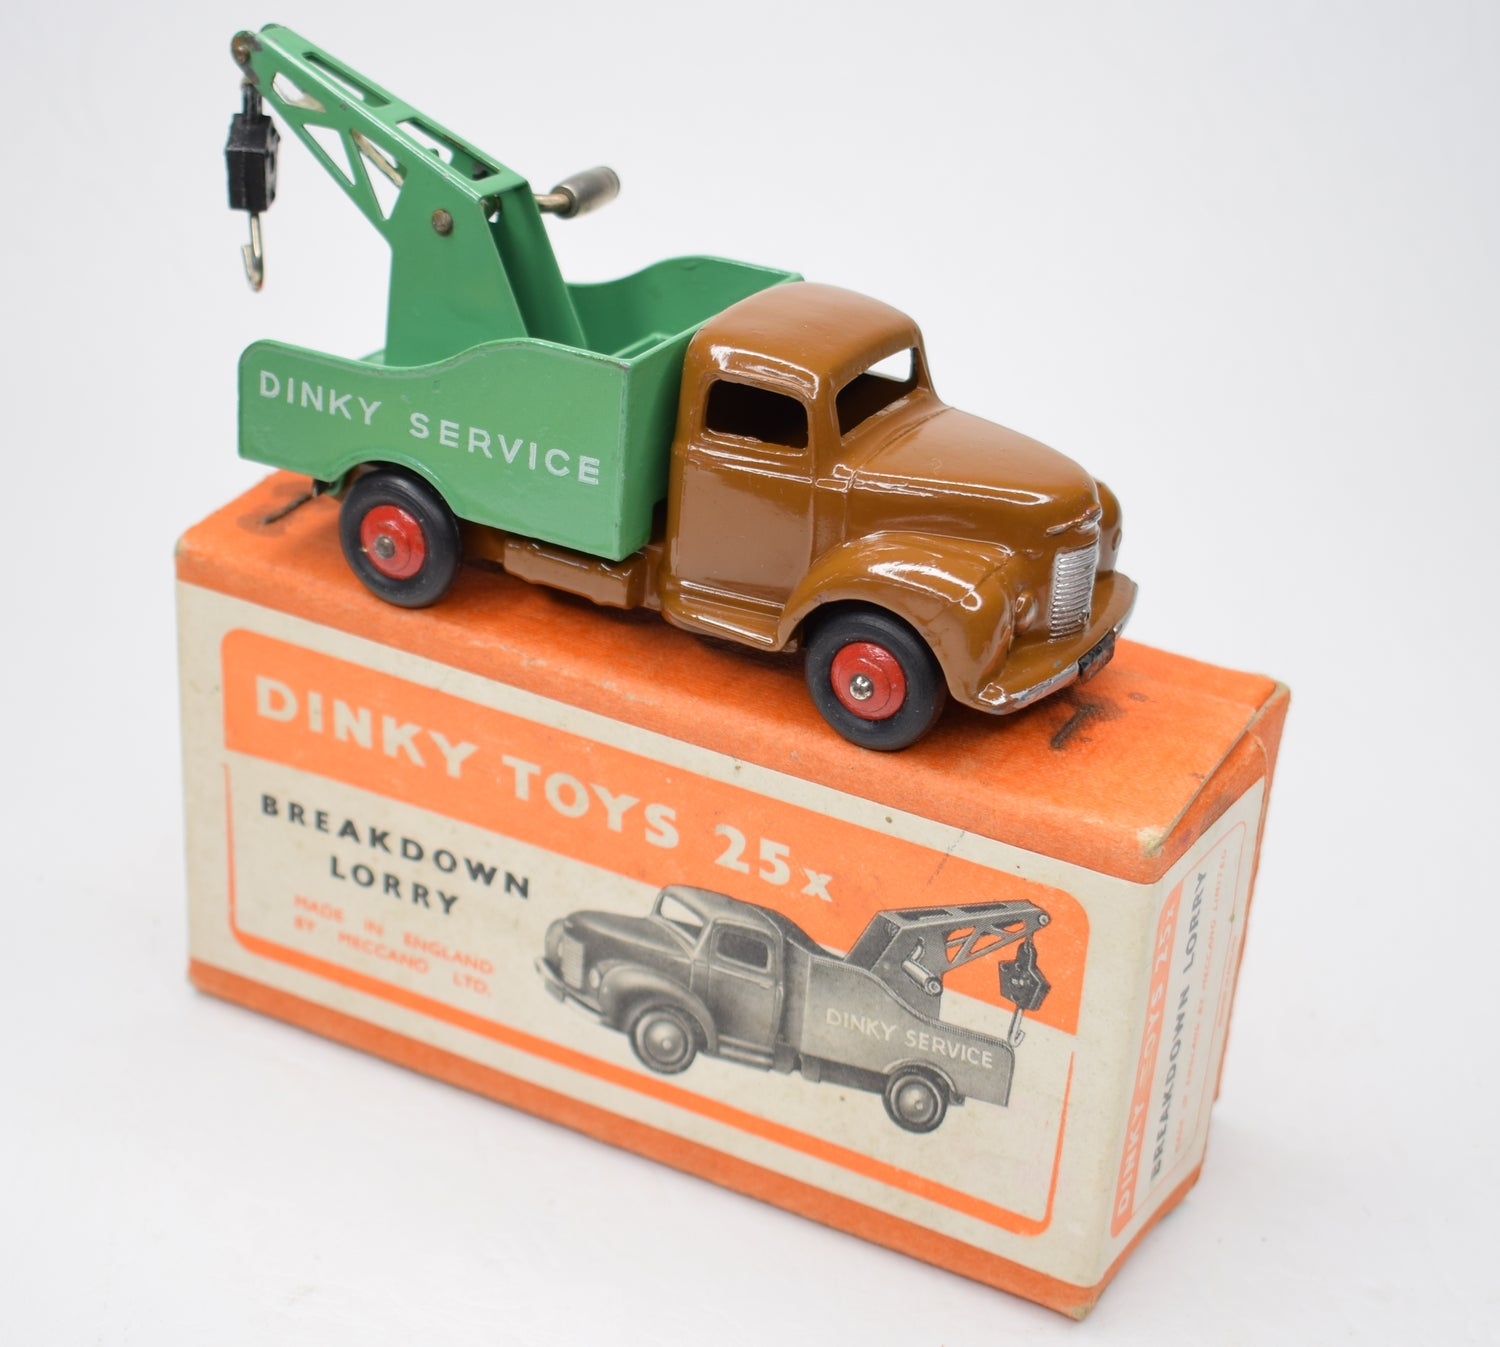 Dinky toys 25x Breakdown Lorry Very Near Mint/Boxed.